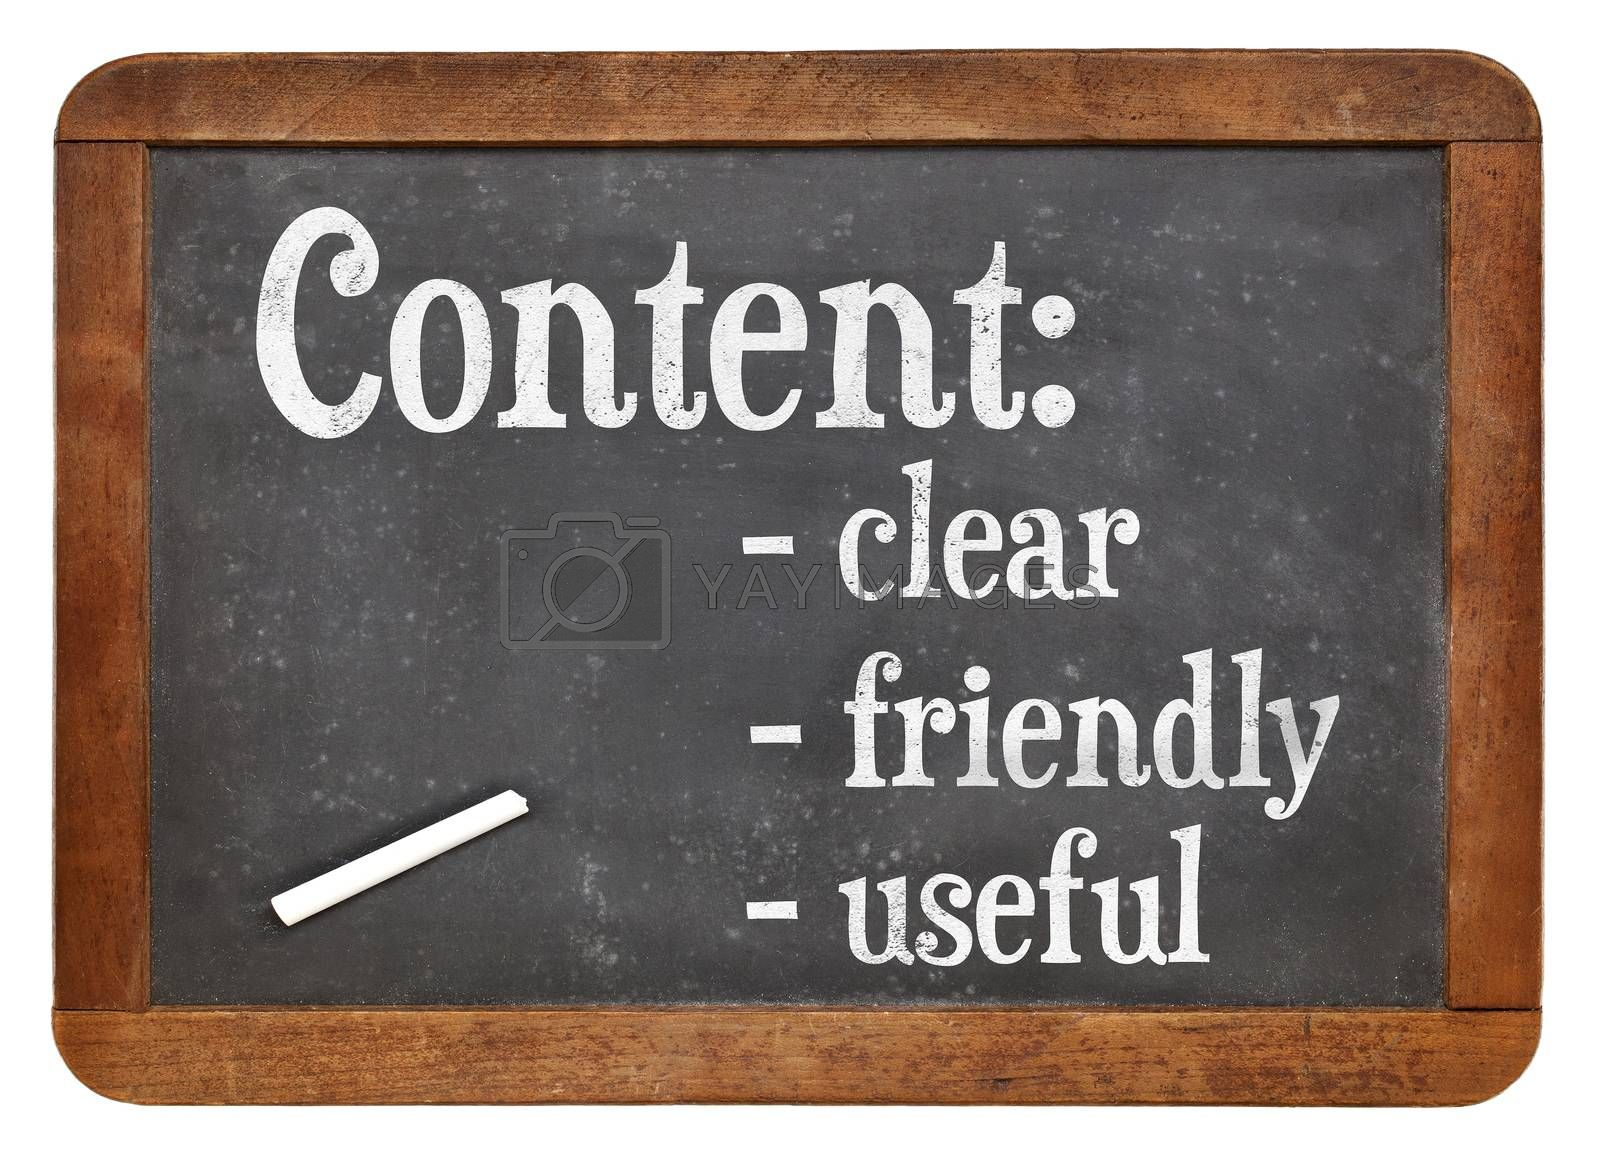 Clear, friendly and useful content  - writing and publishing recommendation on a vintage slate blackboard